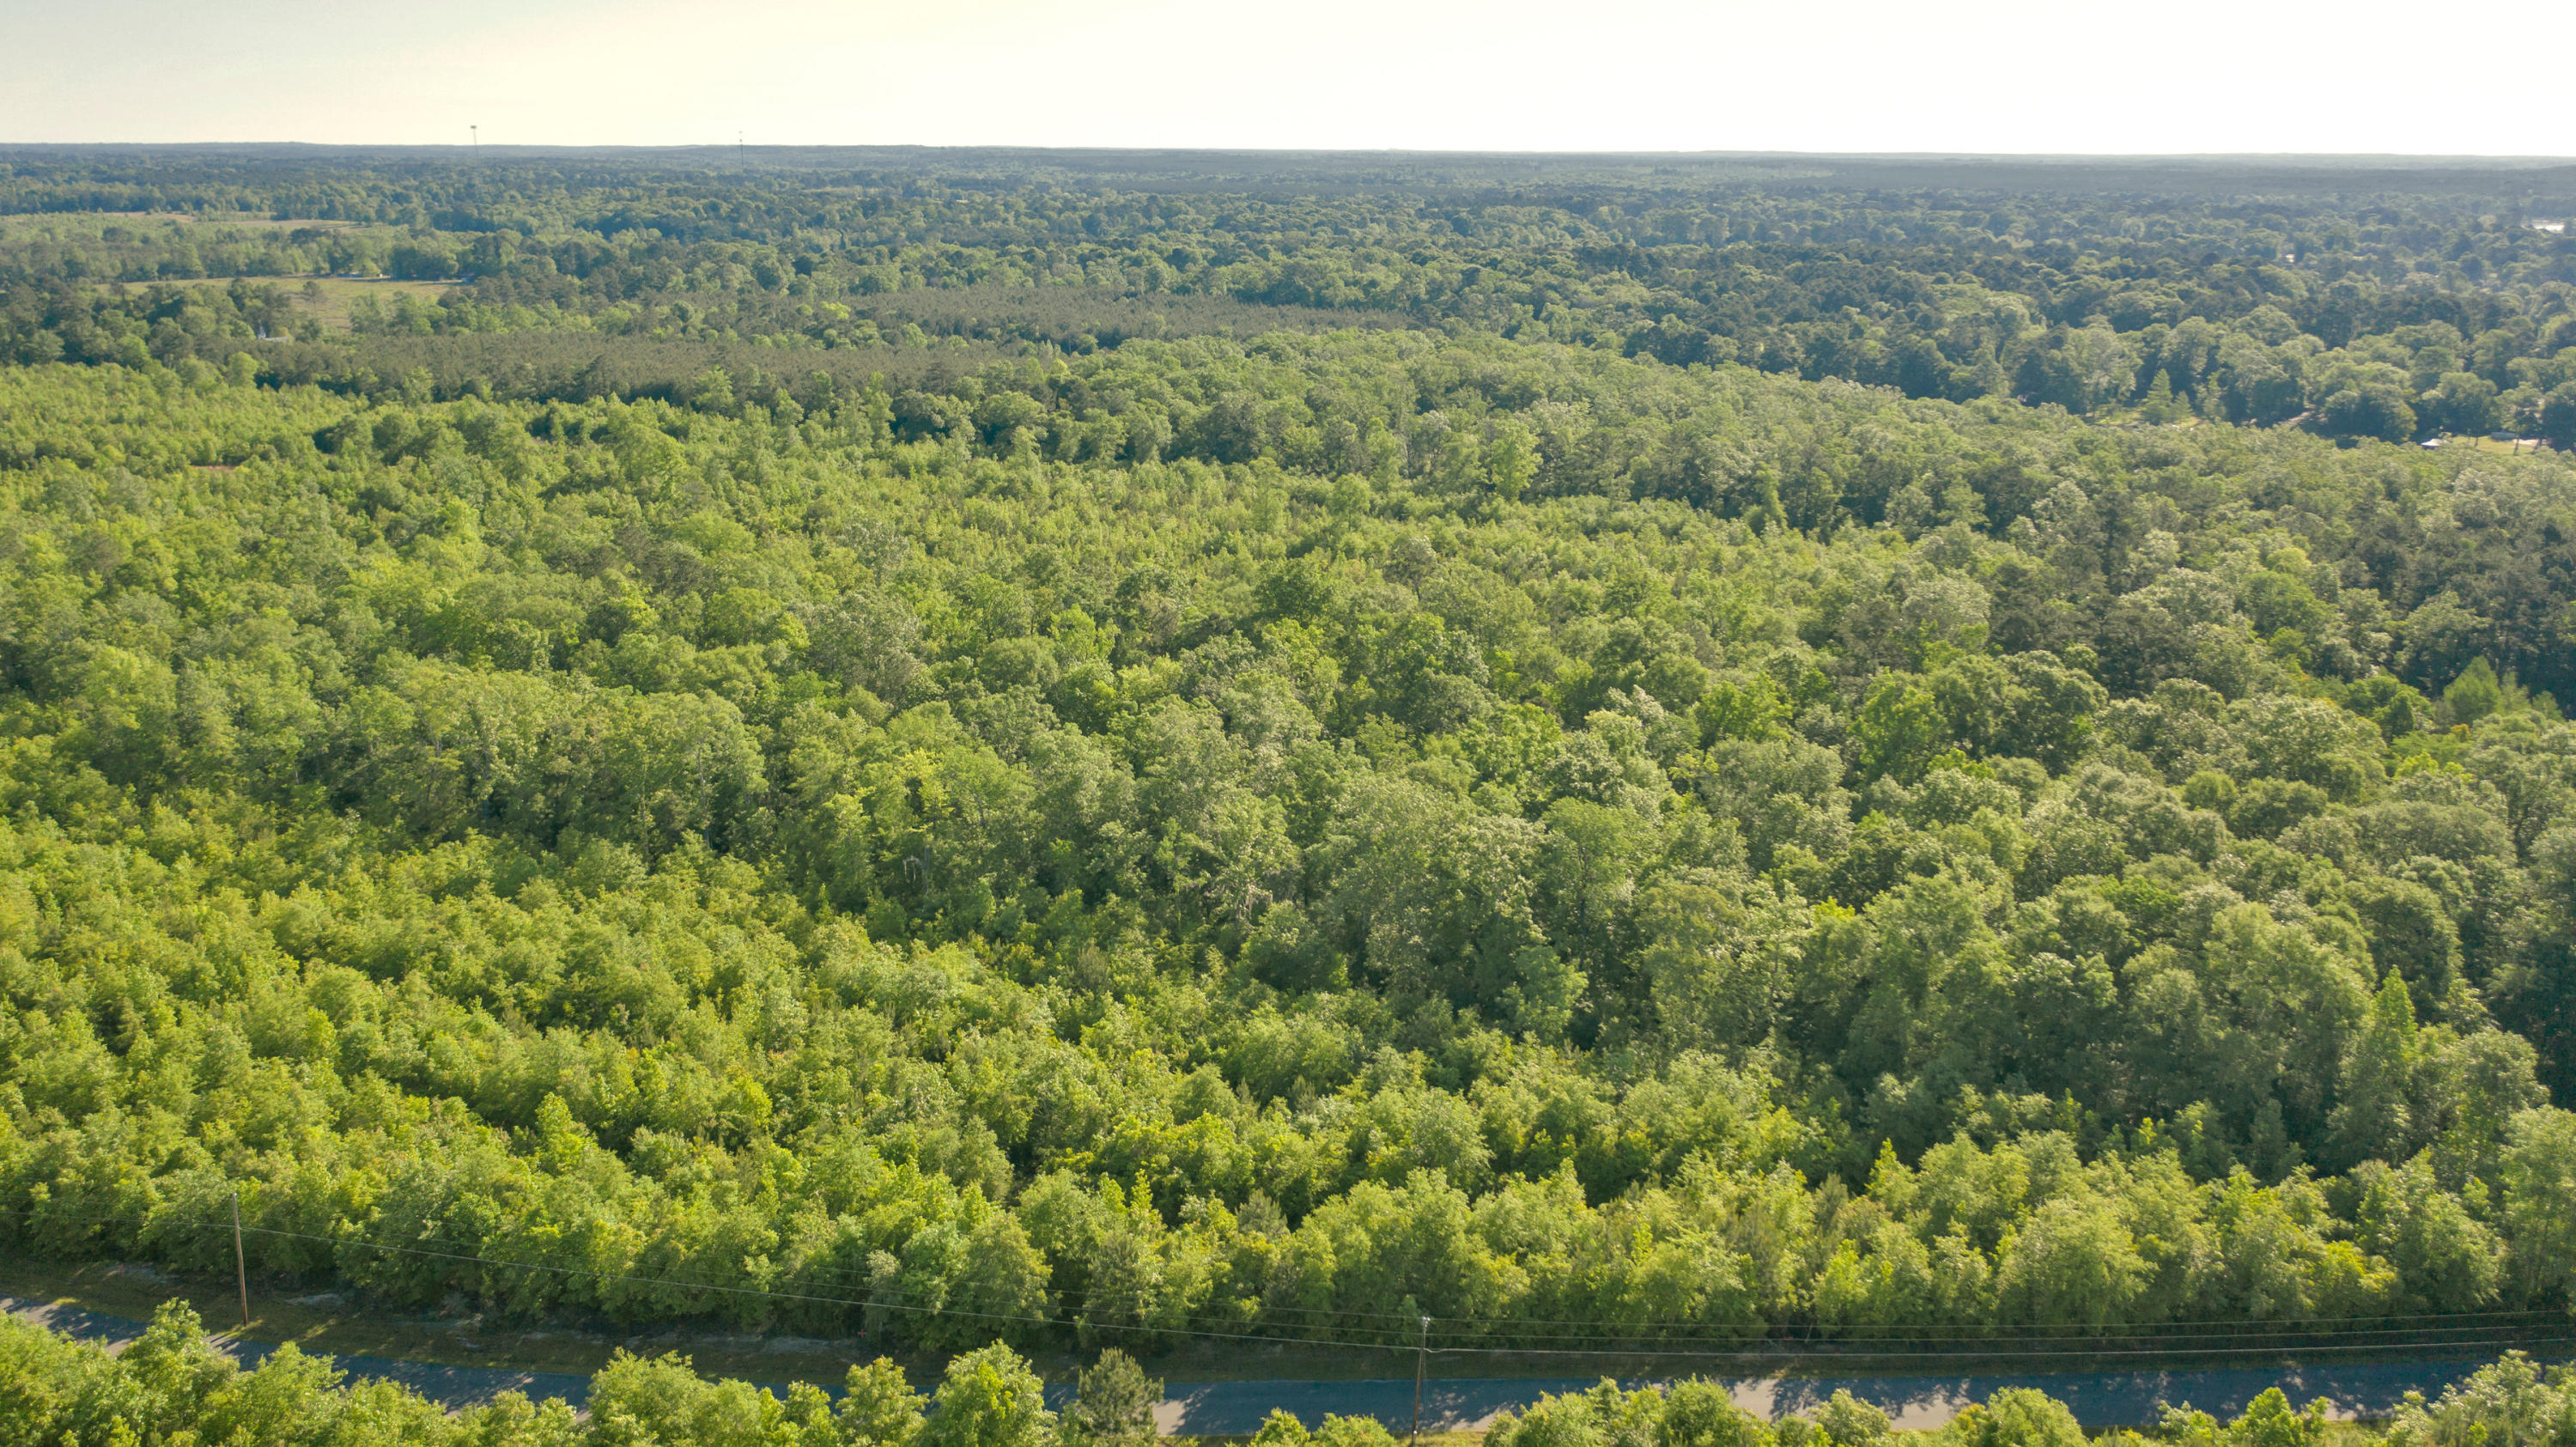 Anacoco land for sale,  Lot 15 Holly Estates Road, Anacoco LA - $38,000